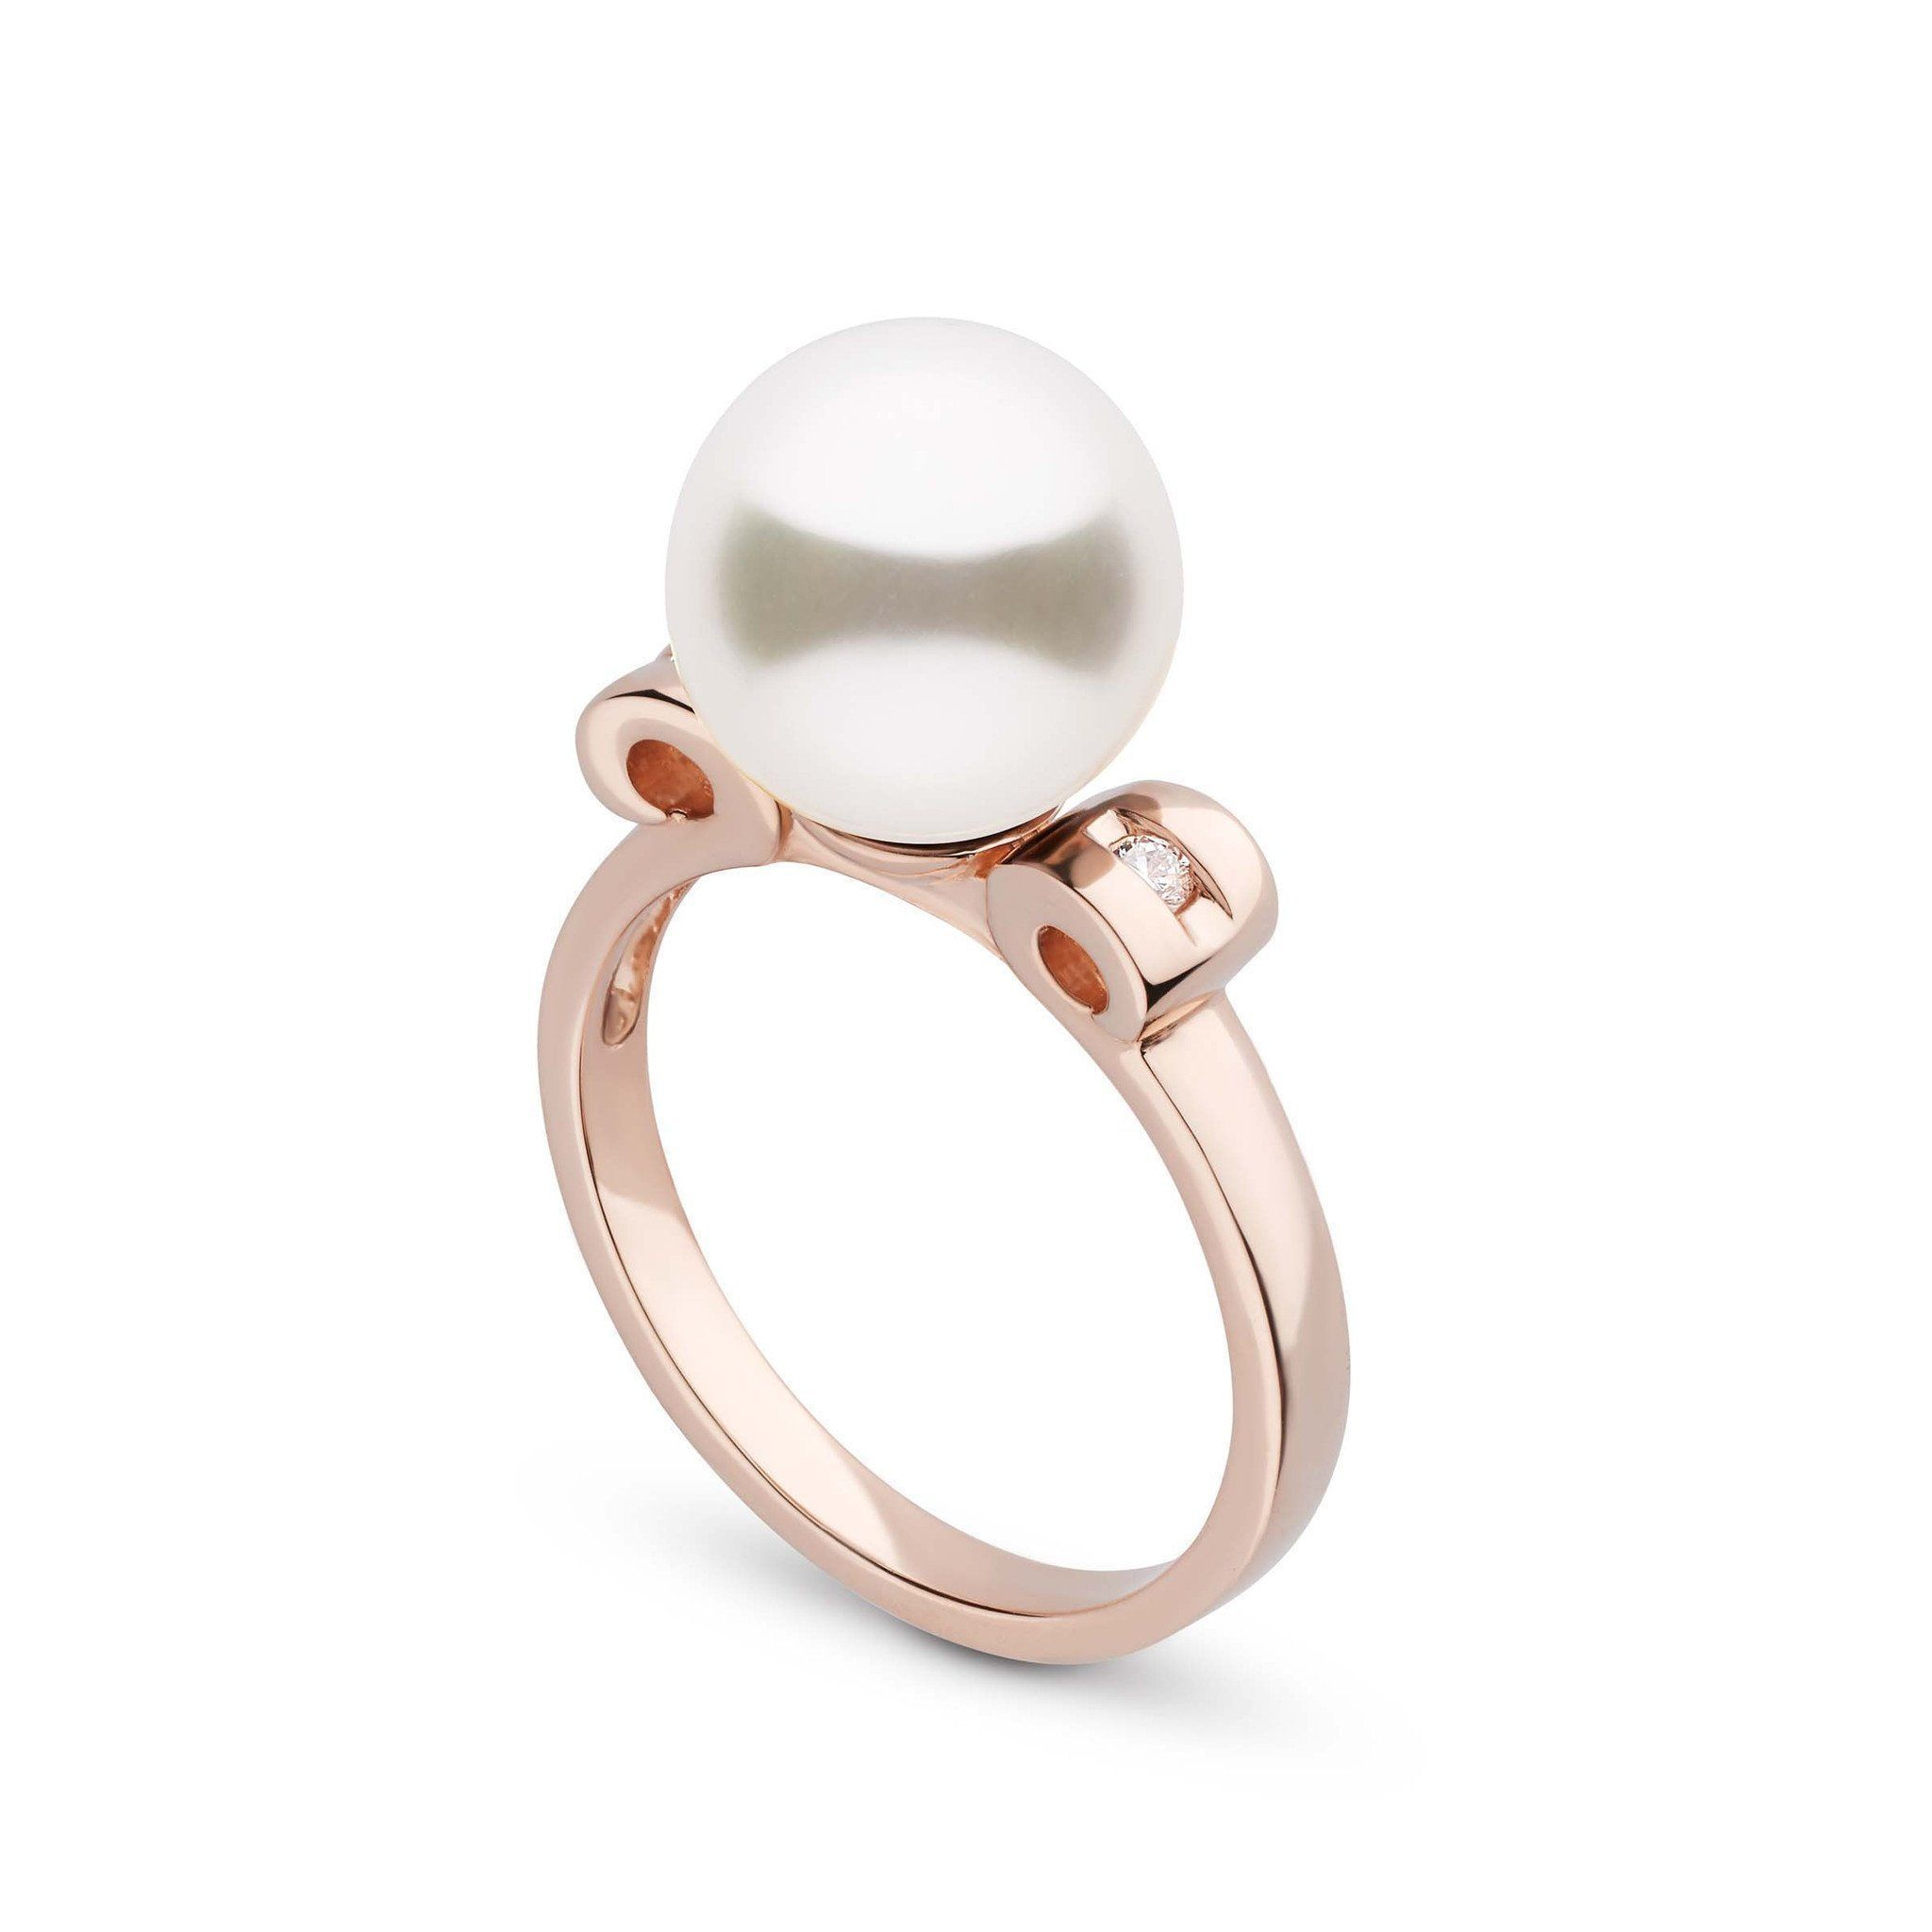 gold city engagement pearl fine s jewelry ring rose neugebauer archive products rings shop sd rapid freshwater